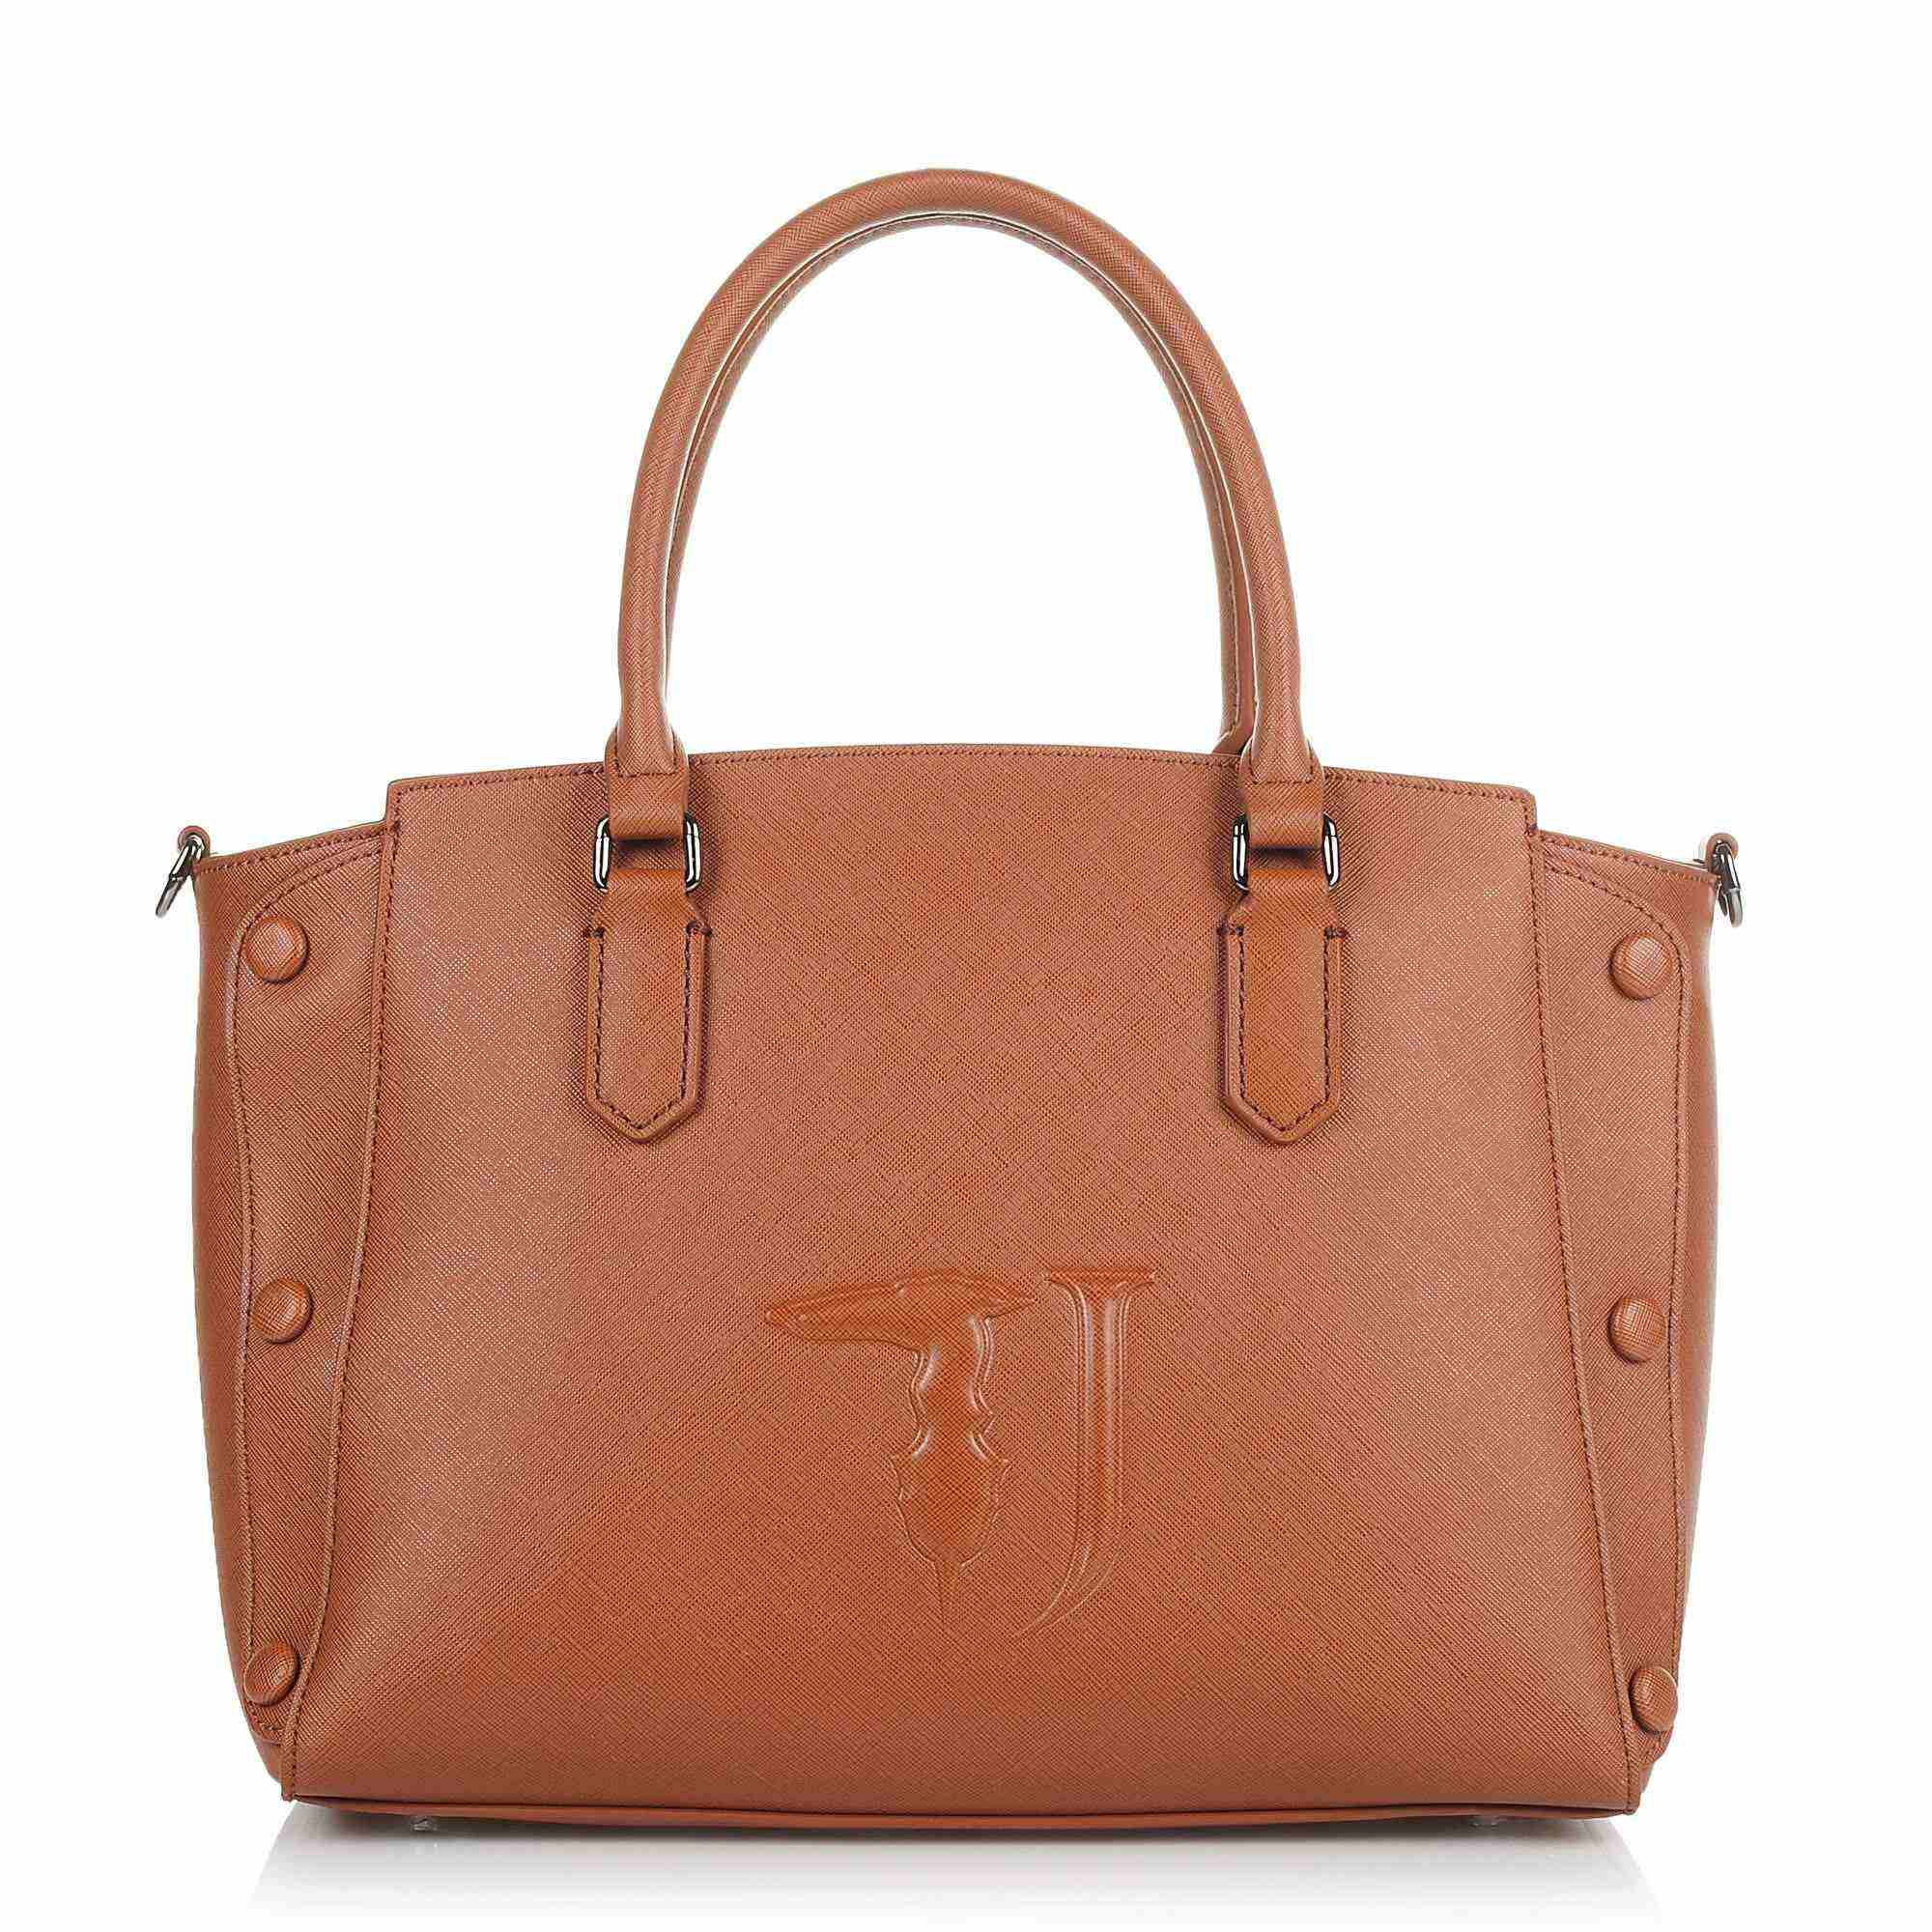 Tote Τσάντα Ώμου-Χιαστί Trussardi Jeans Melissa Tote Medium Bag Ecoleather Covered Studs 75B00454